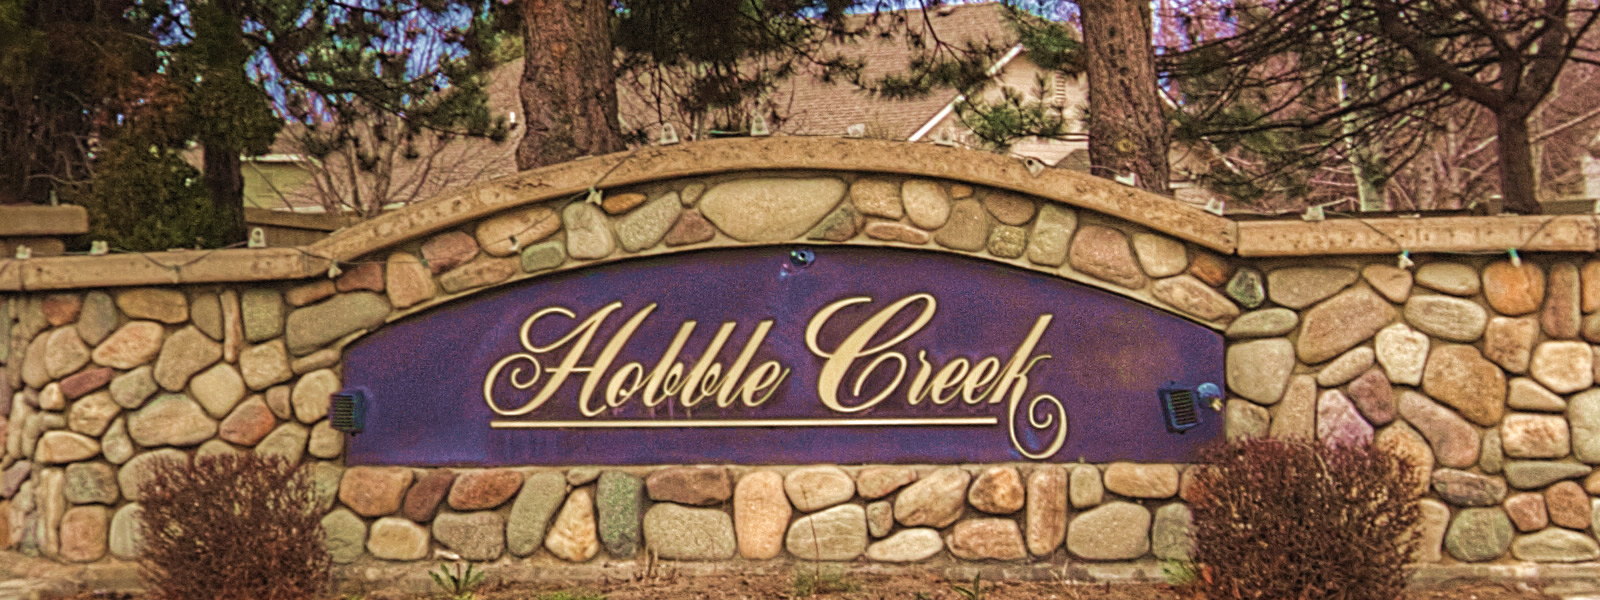 Hobble Creek Boise Idaho